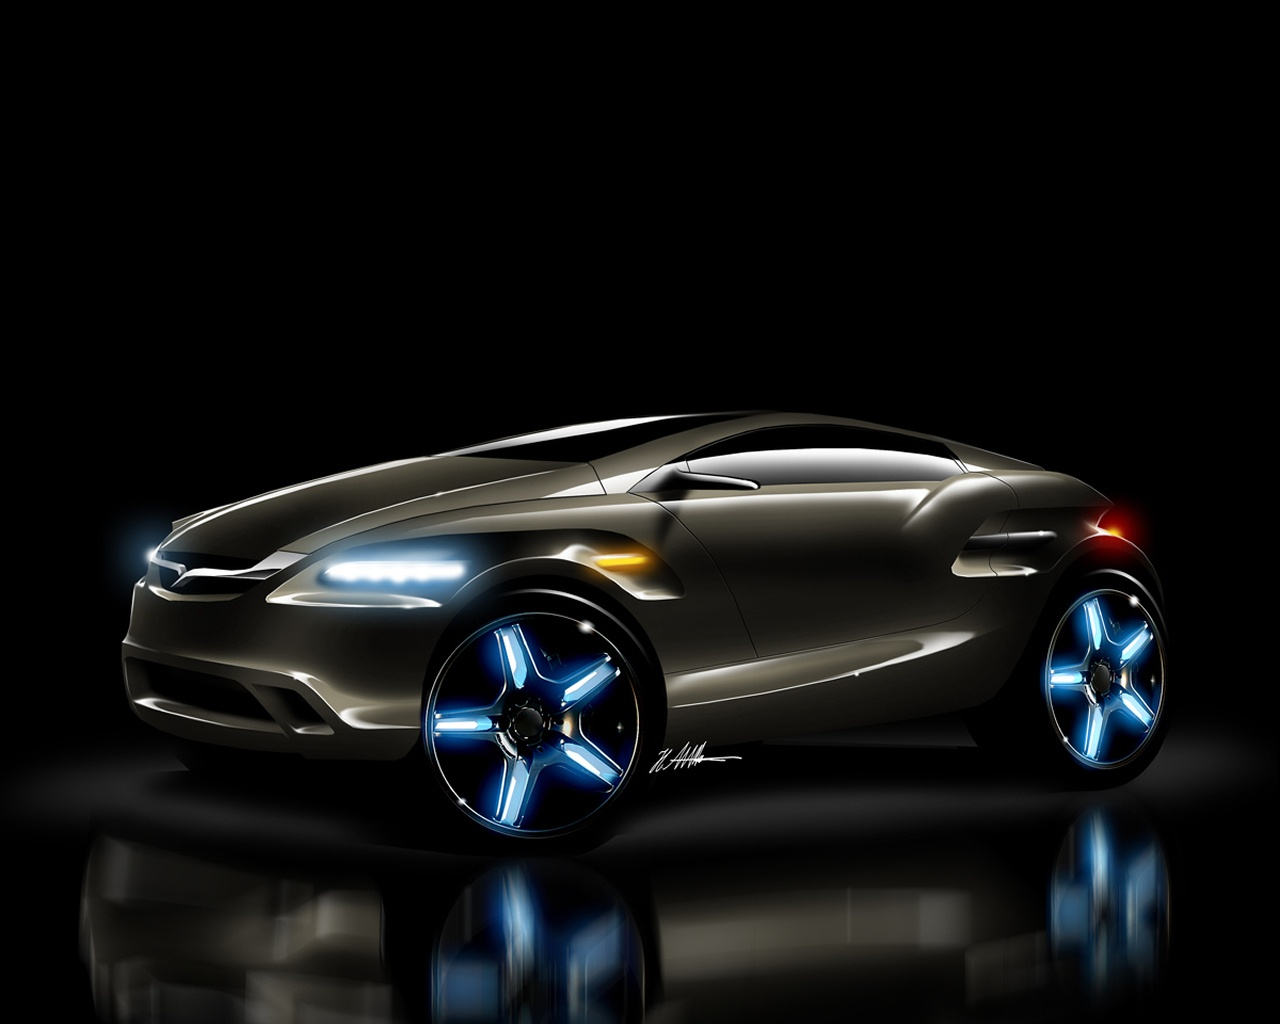 high definition wallpapers - Super Cool Cars Wallpapers Hd